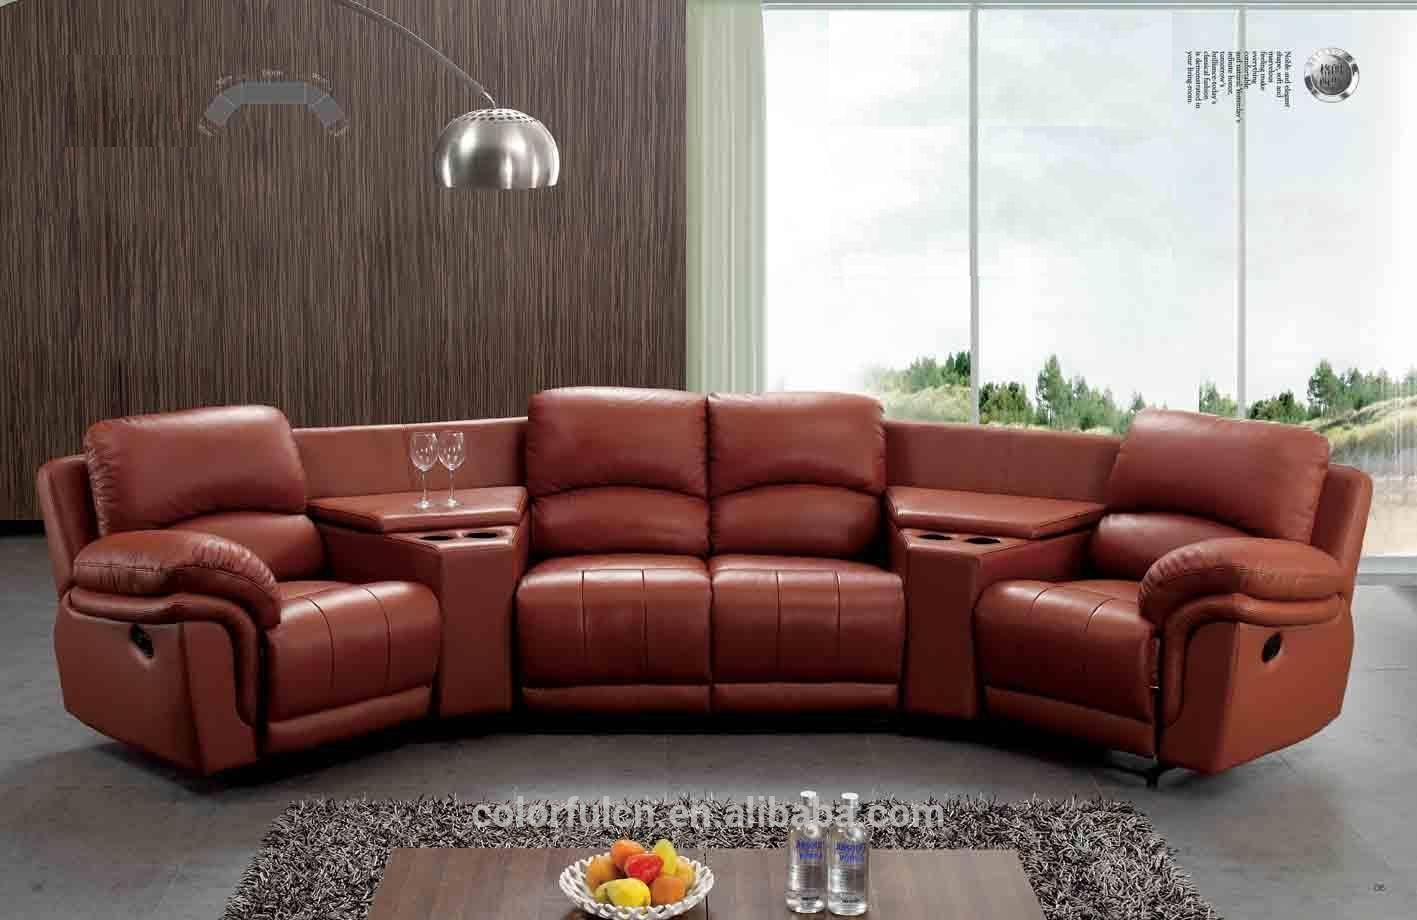 Semi Circle Leather Sofa, Semi Circle Leather Sofa Suppliers And regarding Circle Sofa Chairs (Image 23 of 30)